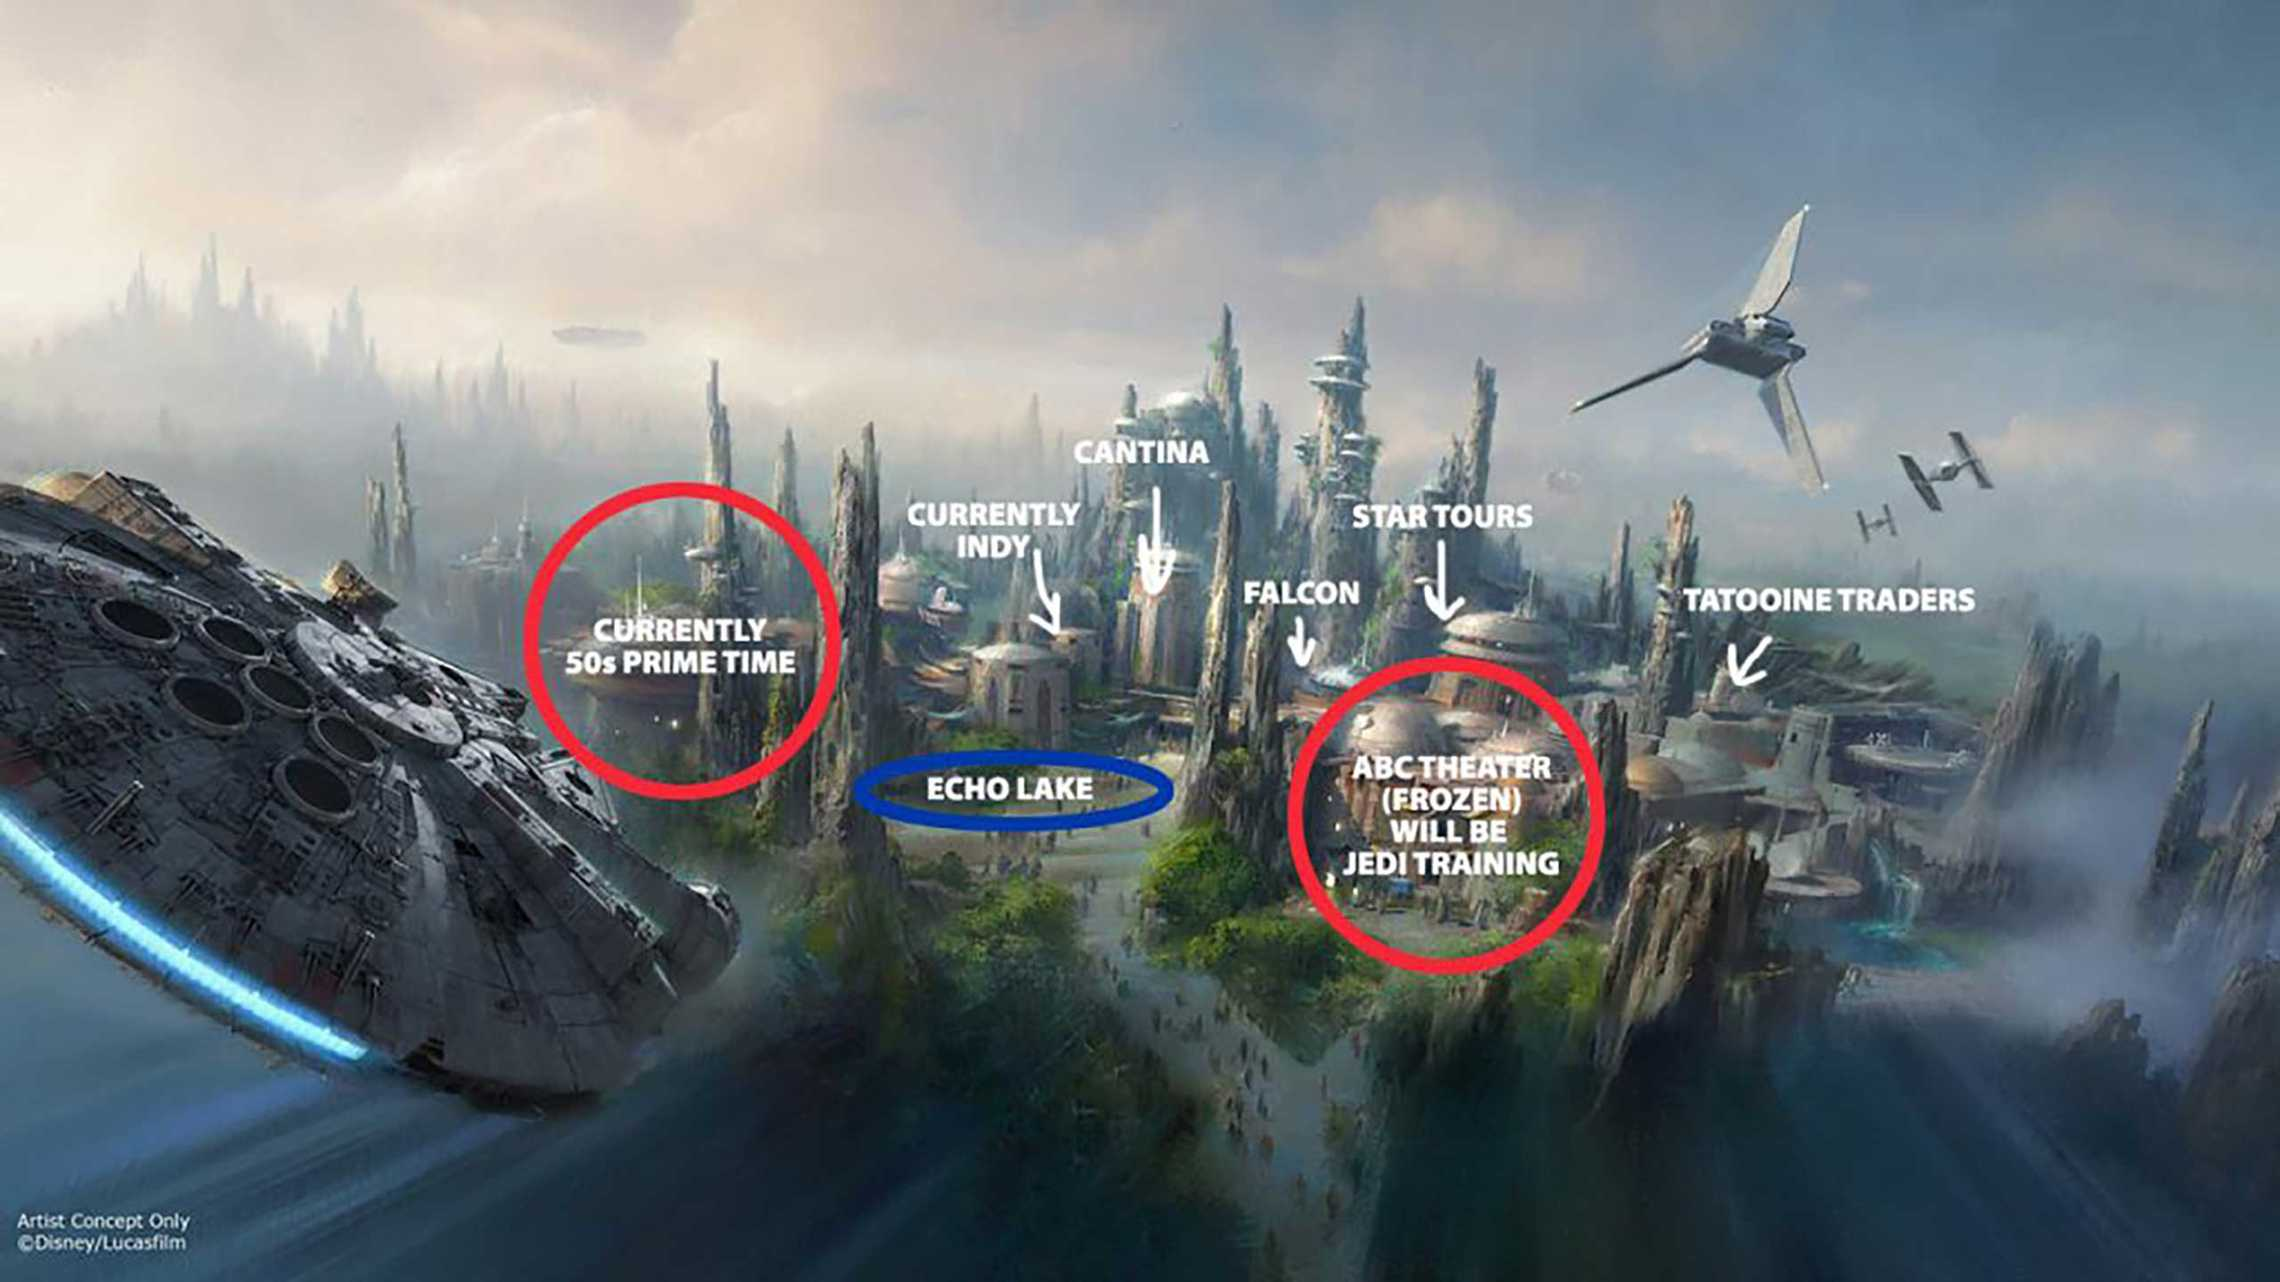 Possible Star Wars Land layout at Disney's Hollywood Studios. By Ignohippo.